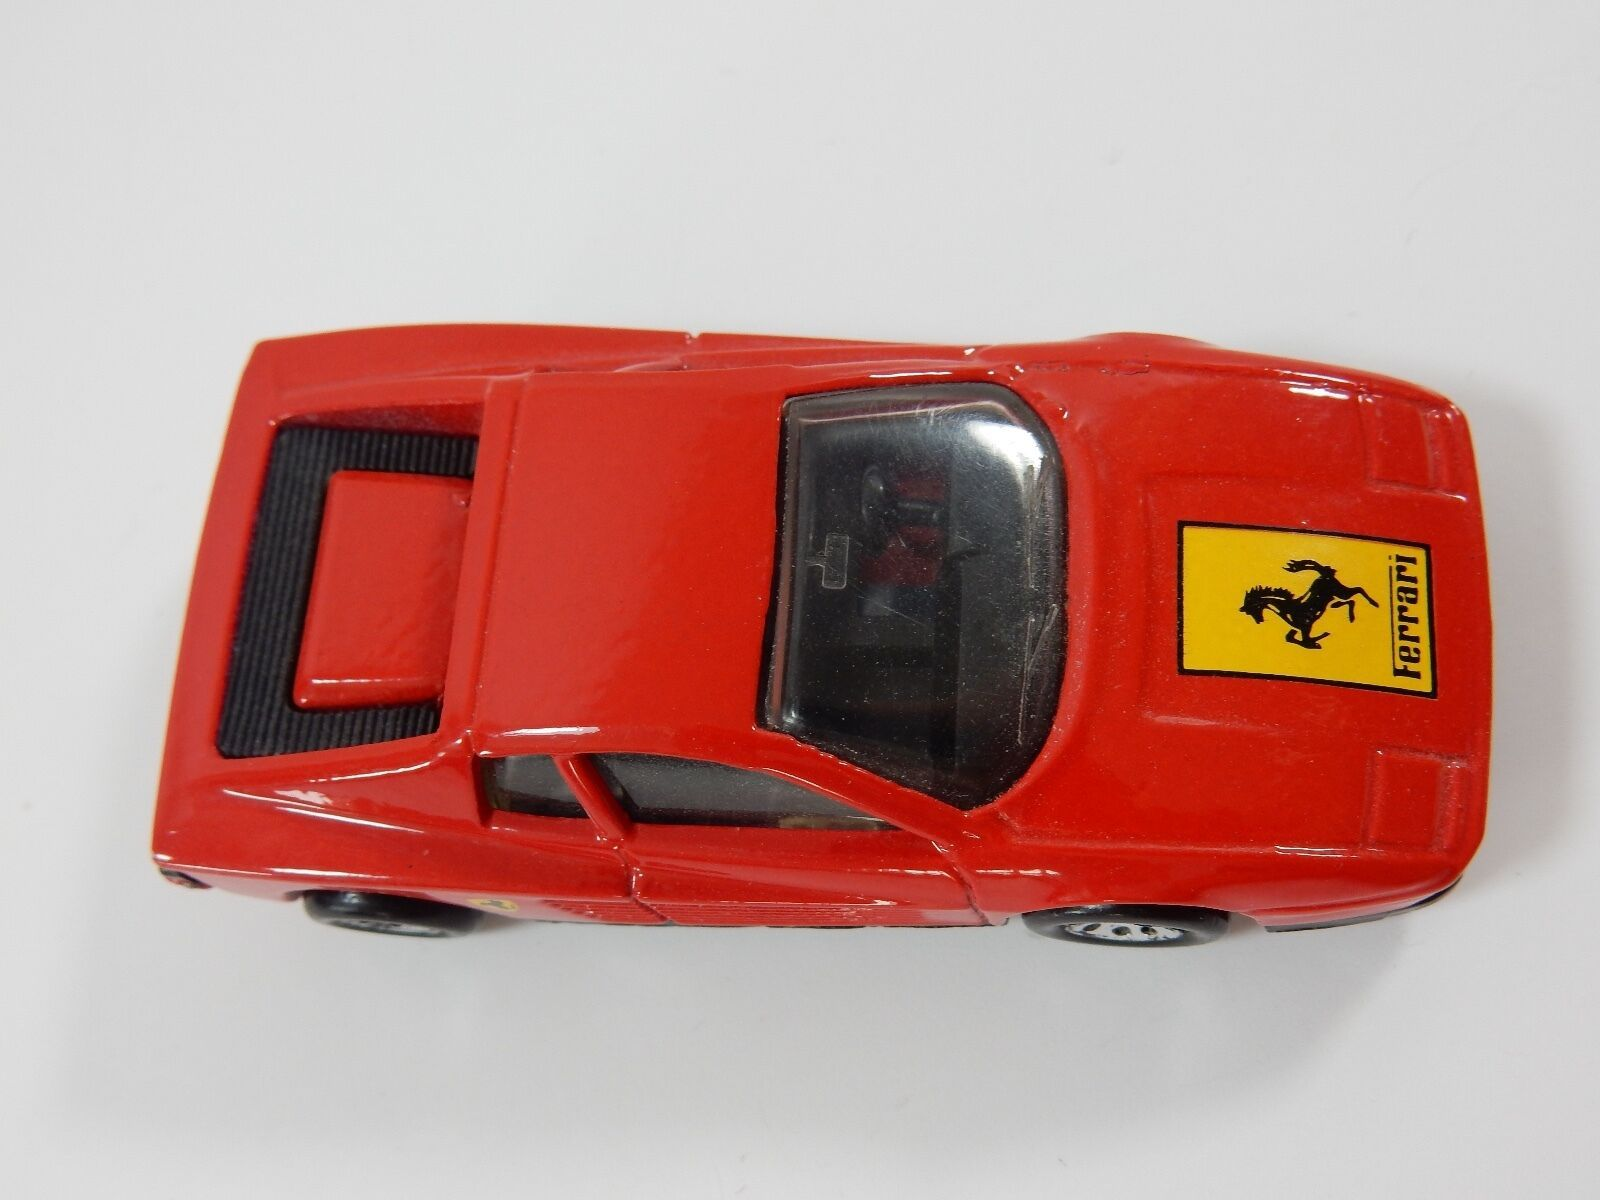 Matchbox 1986 Ferrari Testarossa 1:59 Scale Loose Car